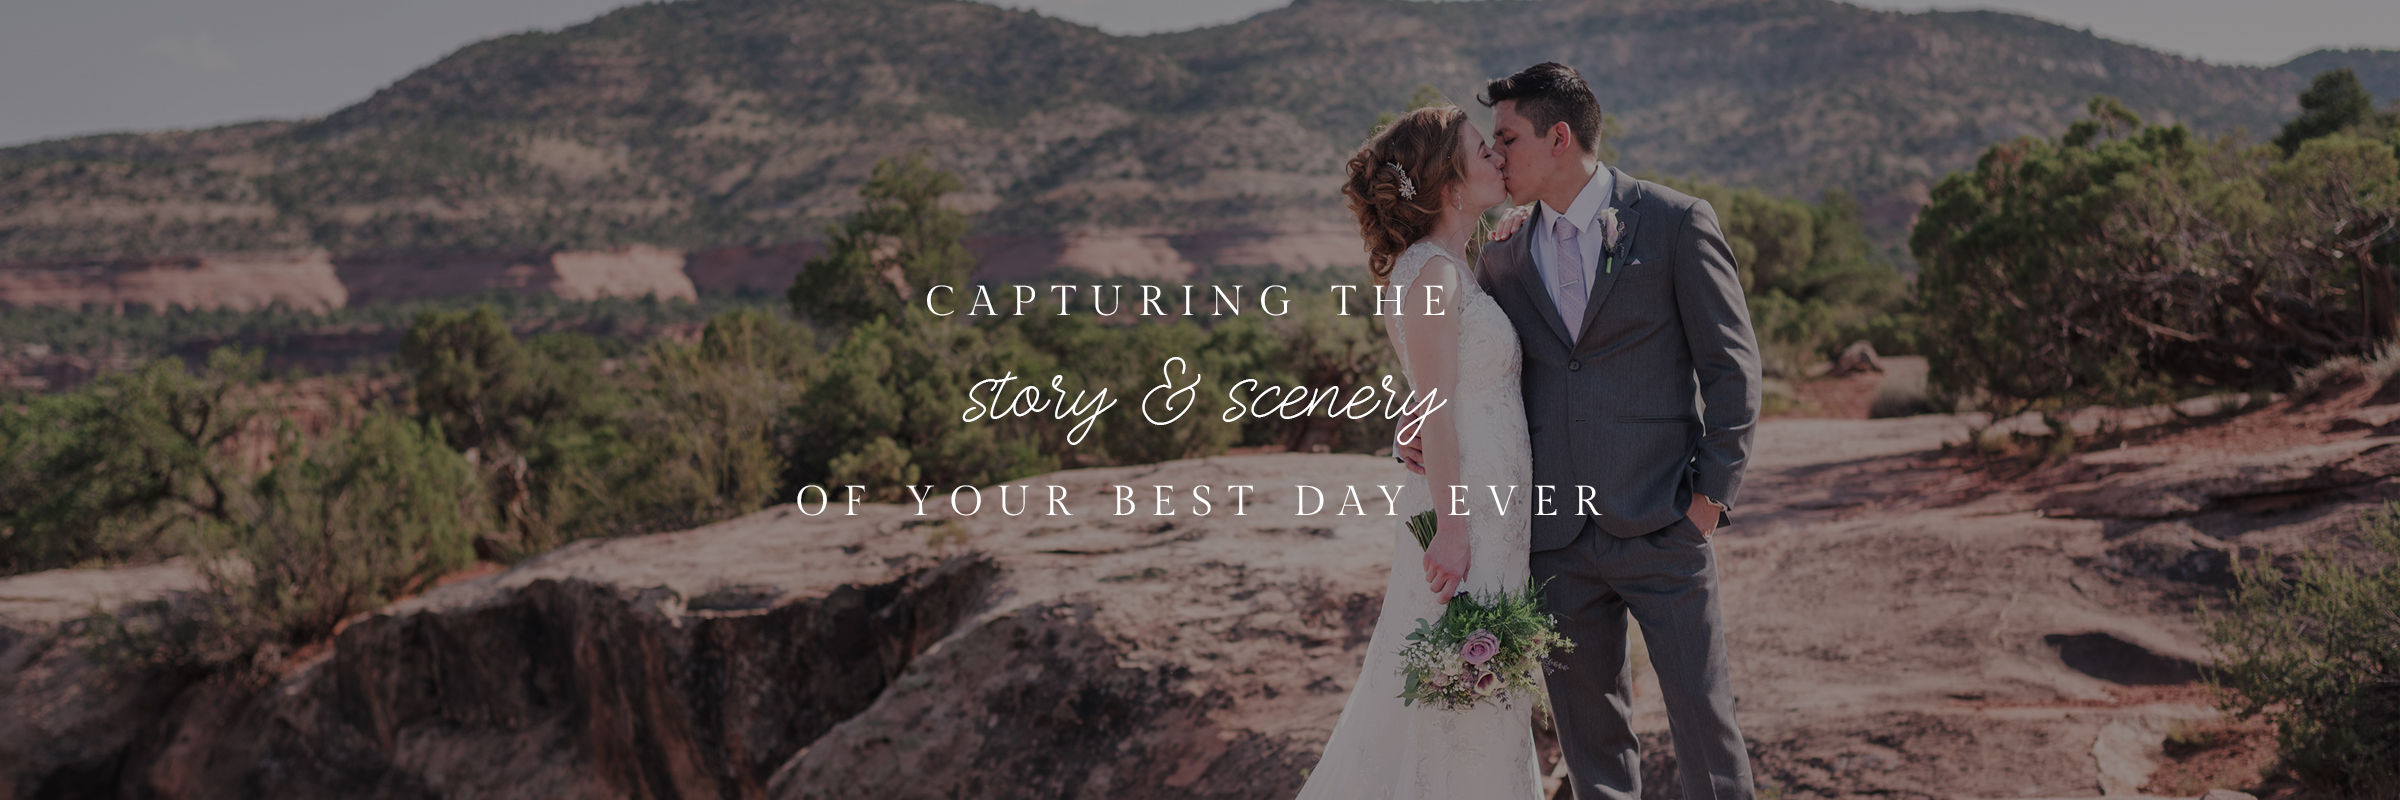 amanda.matilda.photography Capturing the story & scenery of your best day ever | Grand Junction Wedding Photographer